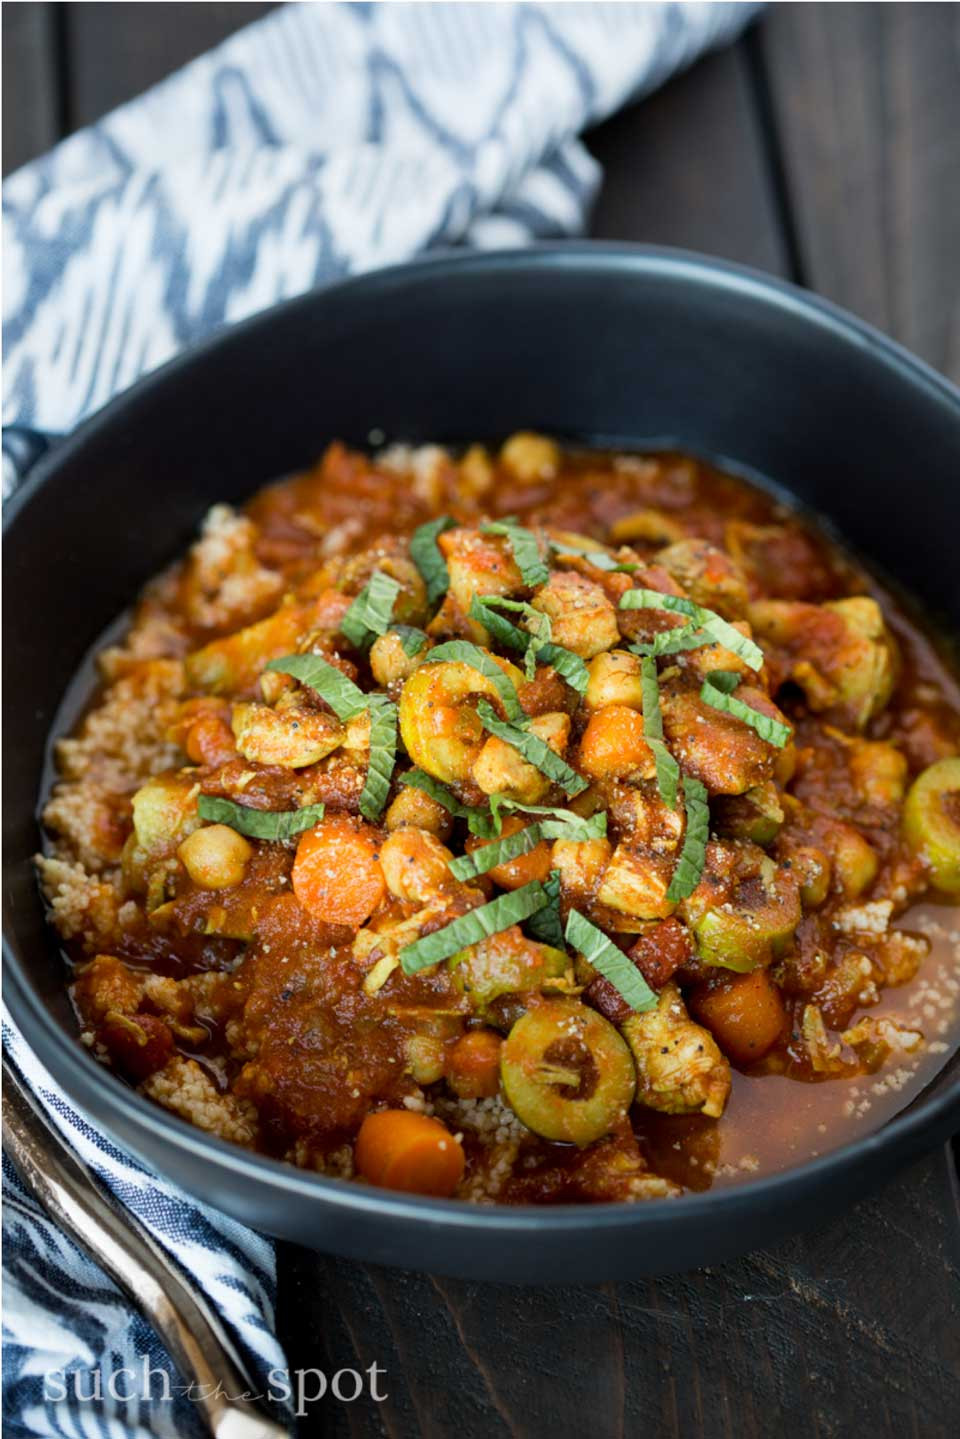 Instant Pot Stew Recipes  Healthier Instant Pot Beef Stew Recipes and Tips Two